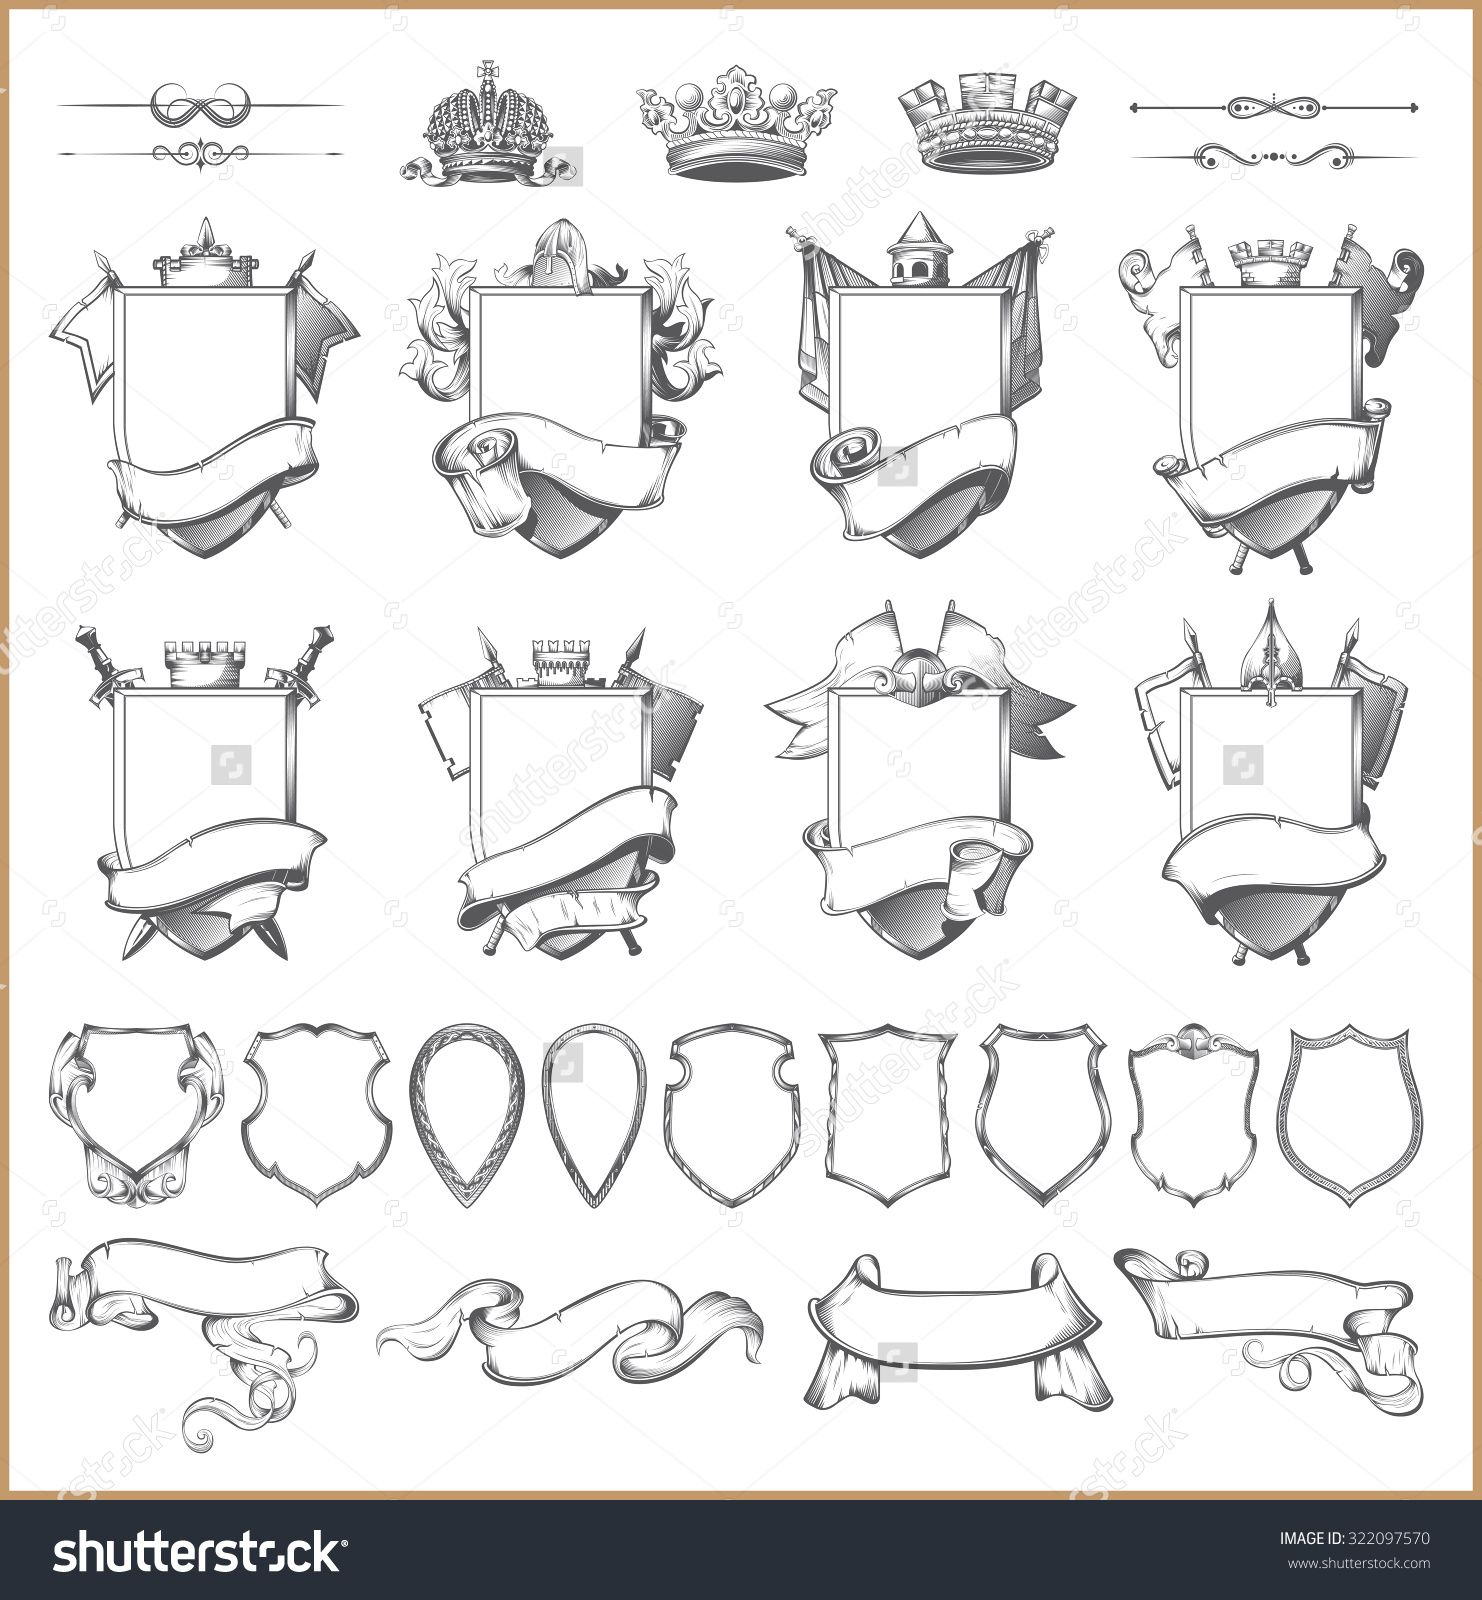 graphic royalty free download Vector crest template. Heraldic element collection and